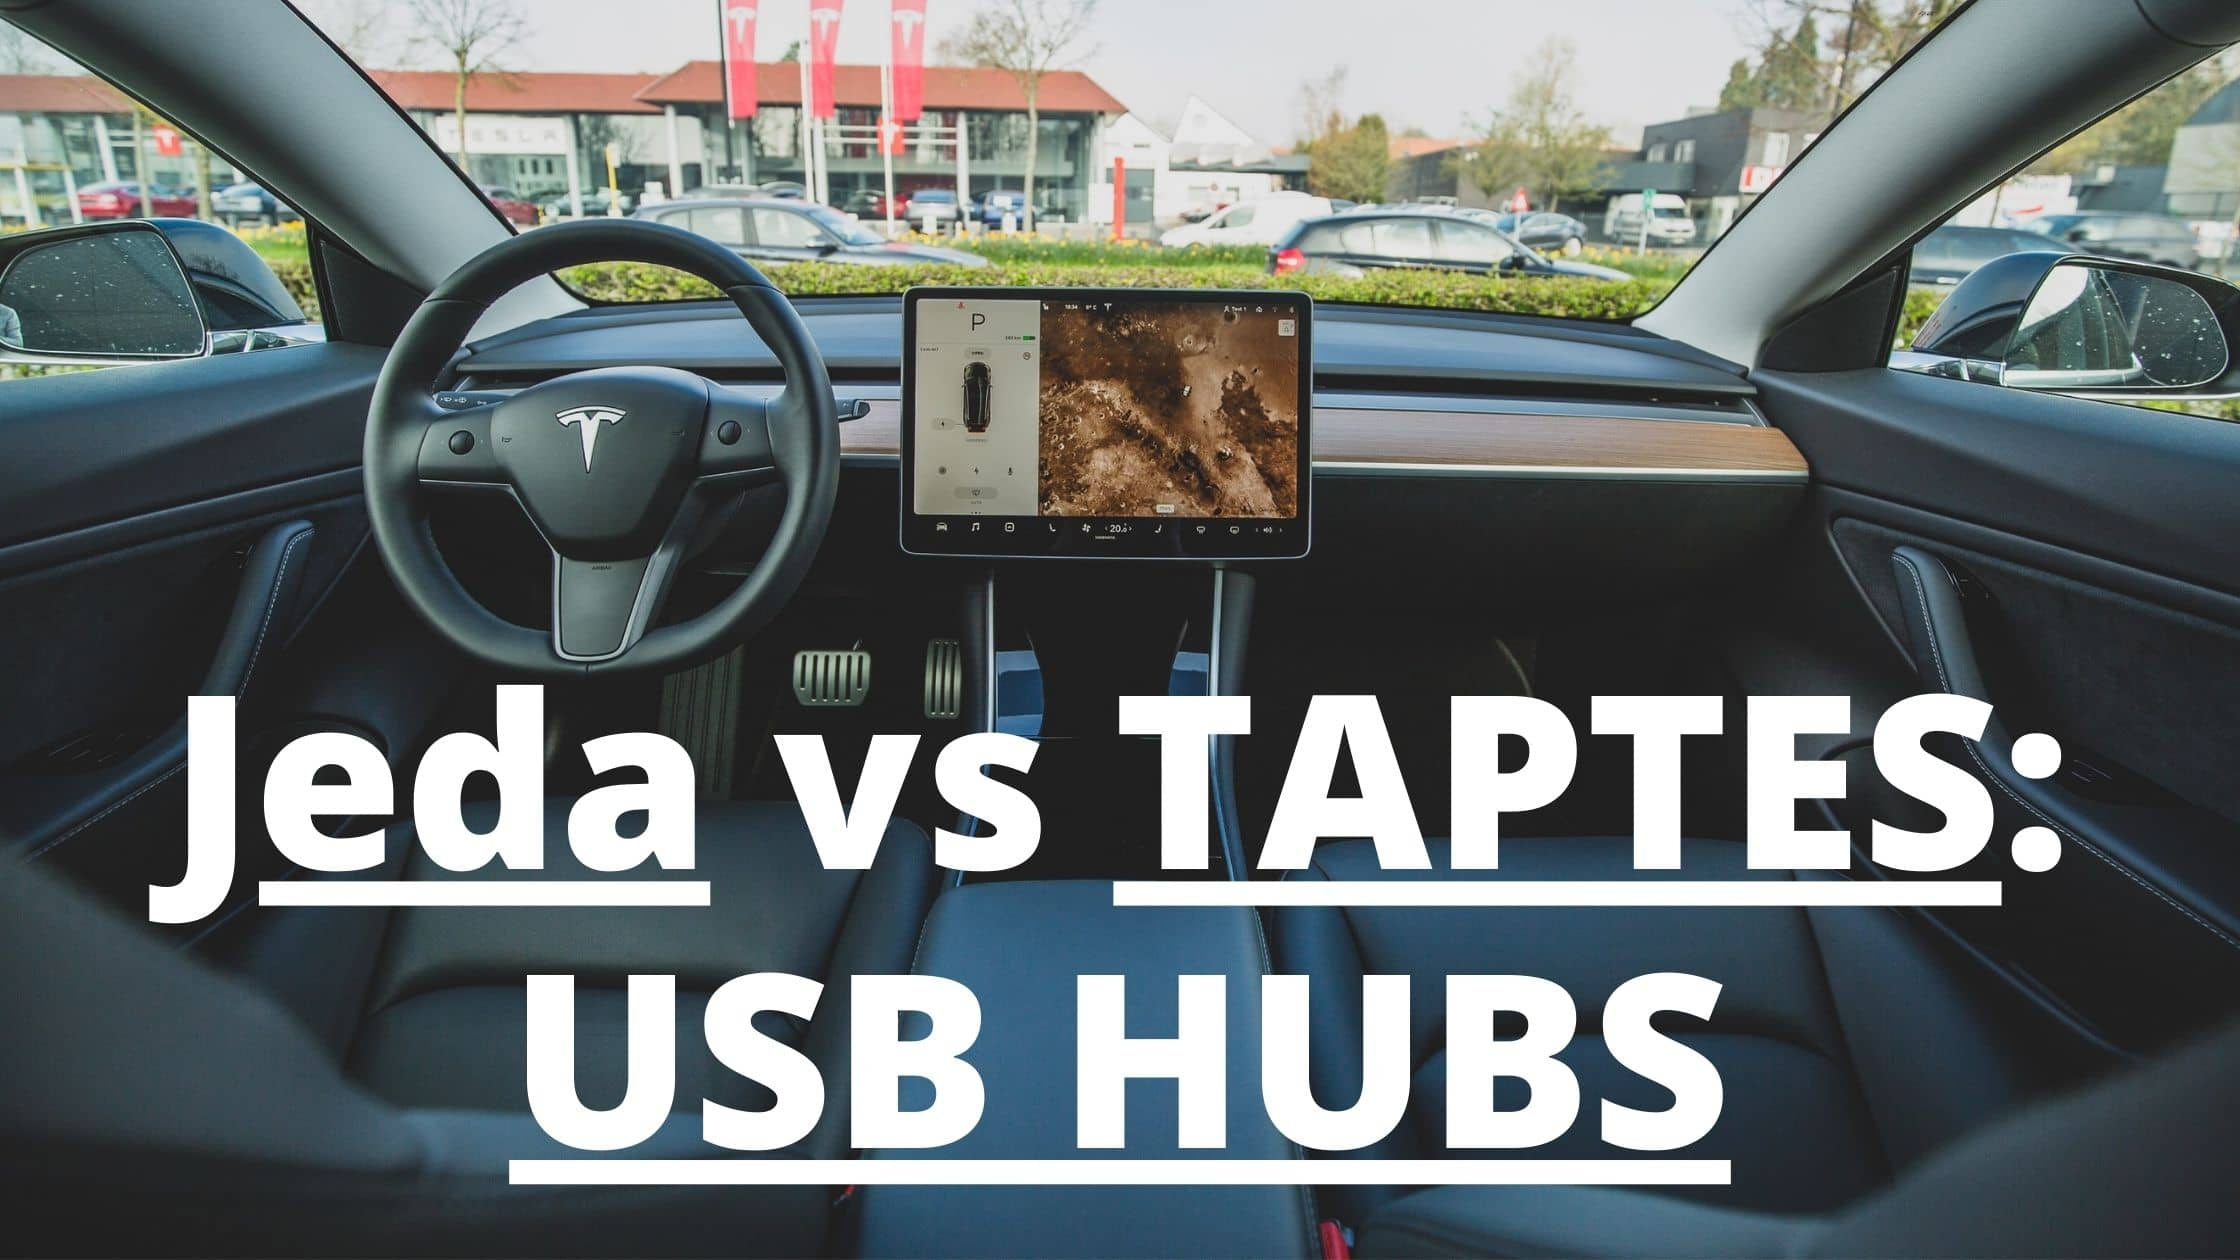 Jeda USB Hub vs TAPTES USB Hub - Features, Pricing, Thoughts 5